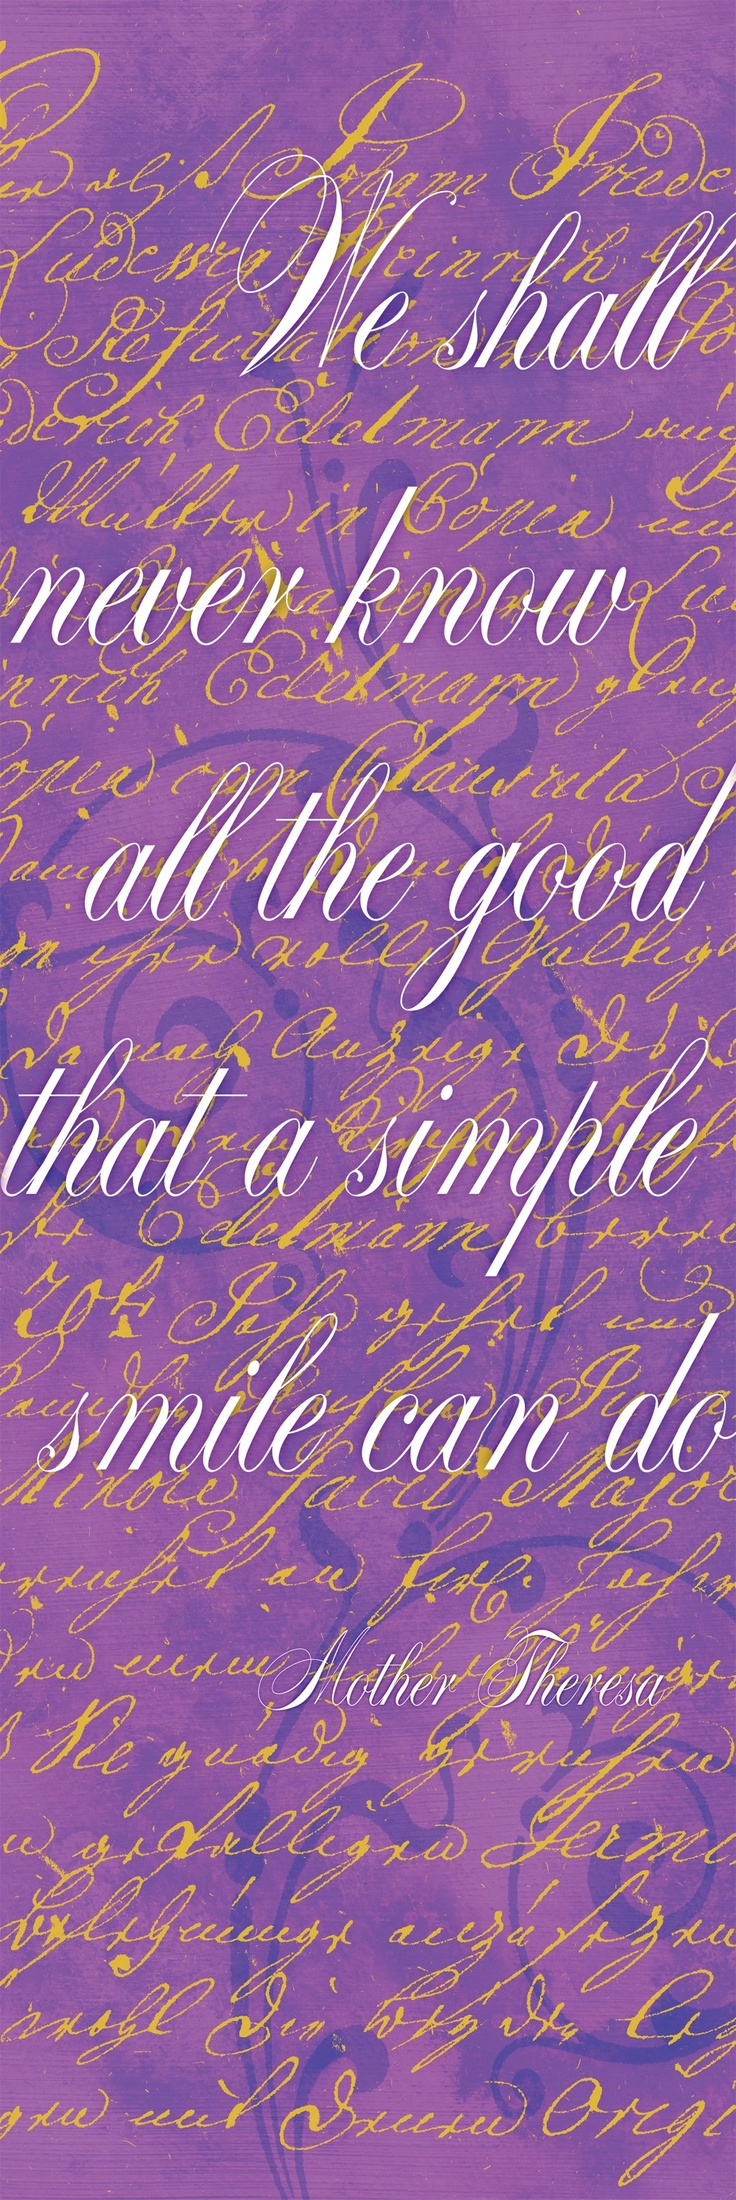 Sorbet Scripts - Simple Smile by Studio Voltaire. Canvas Wall Art by InGallery.com